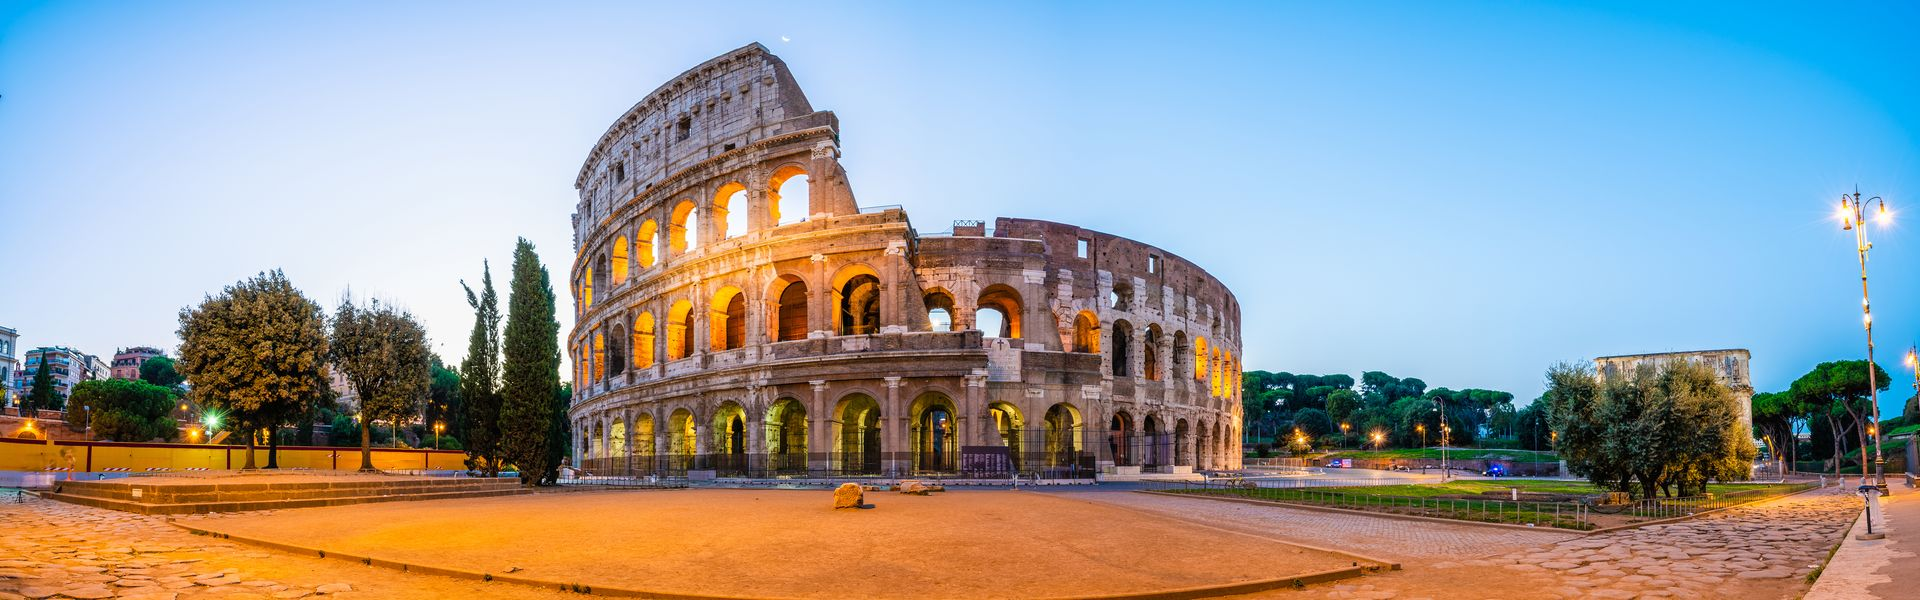 Last-minute camping holidays in Rome